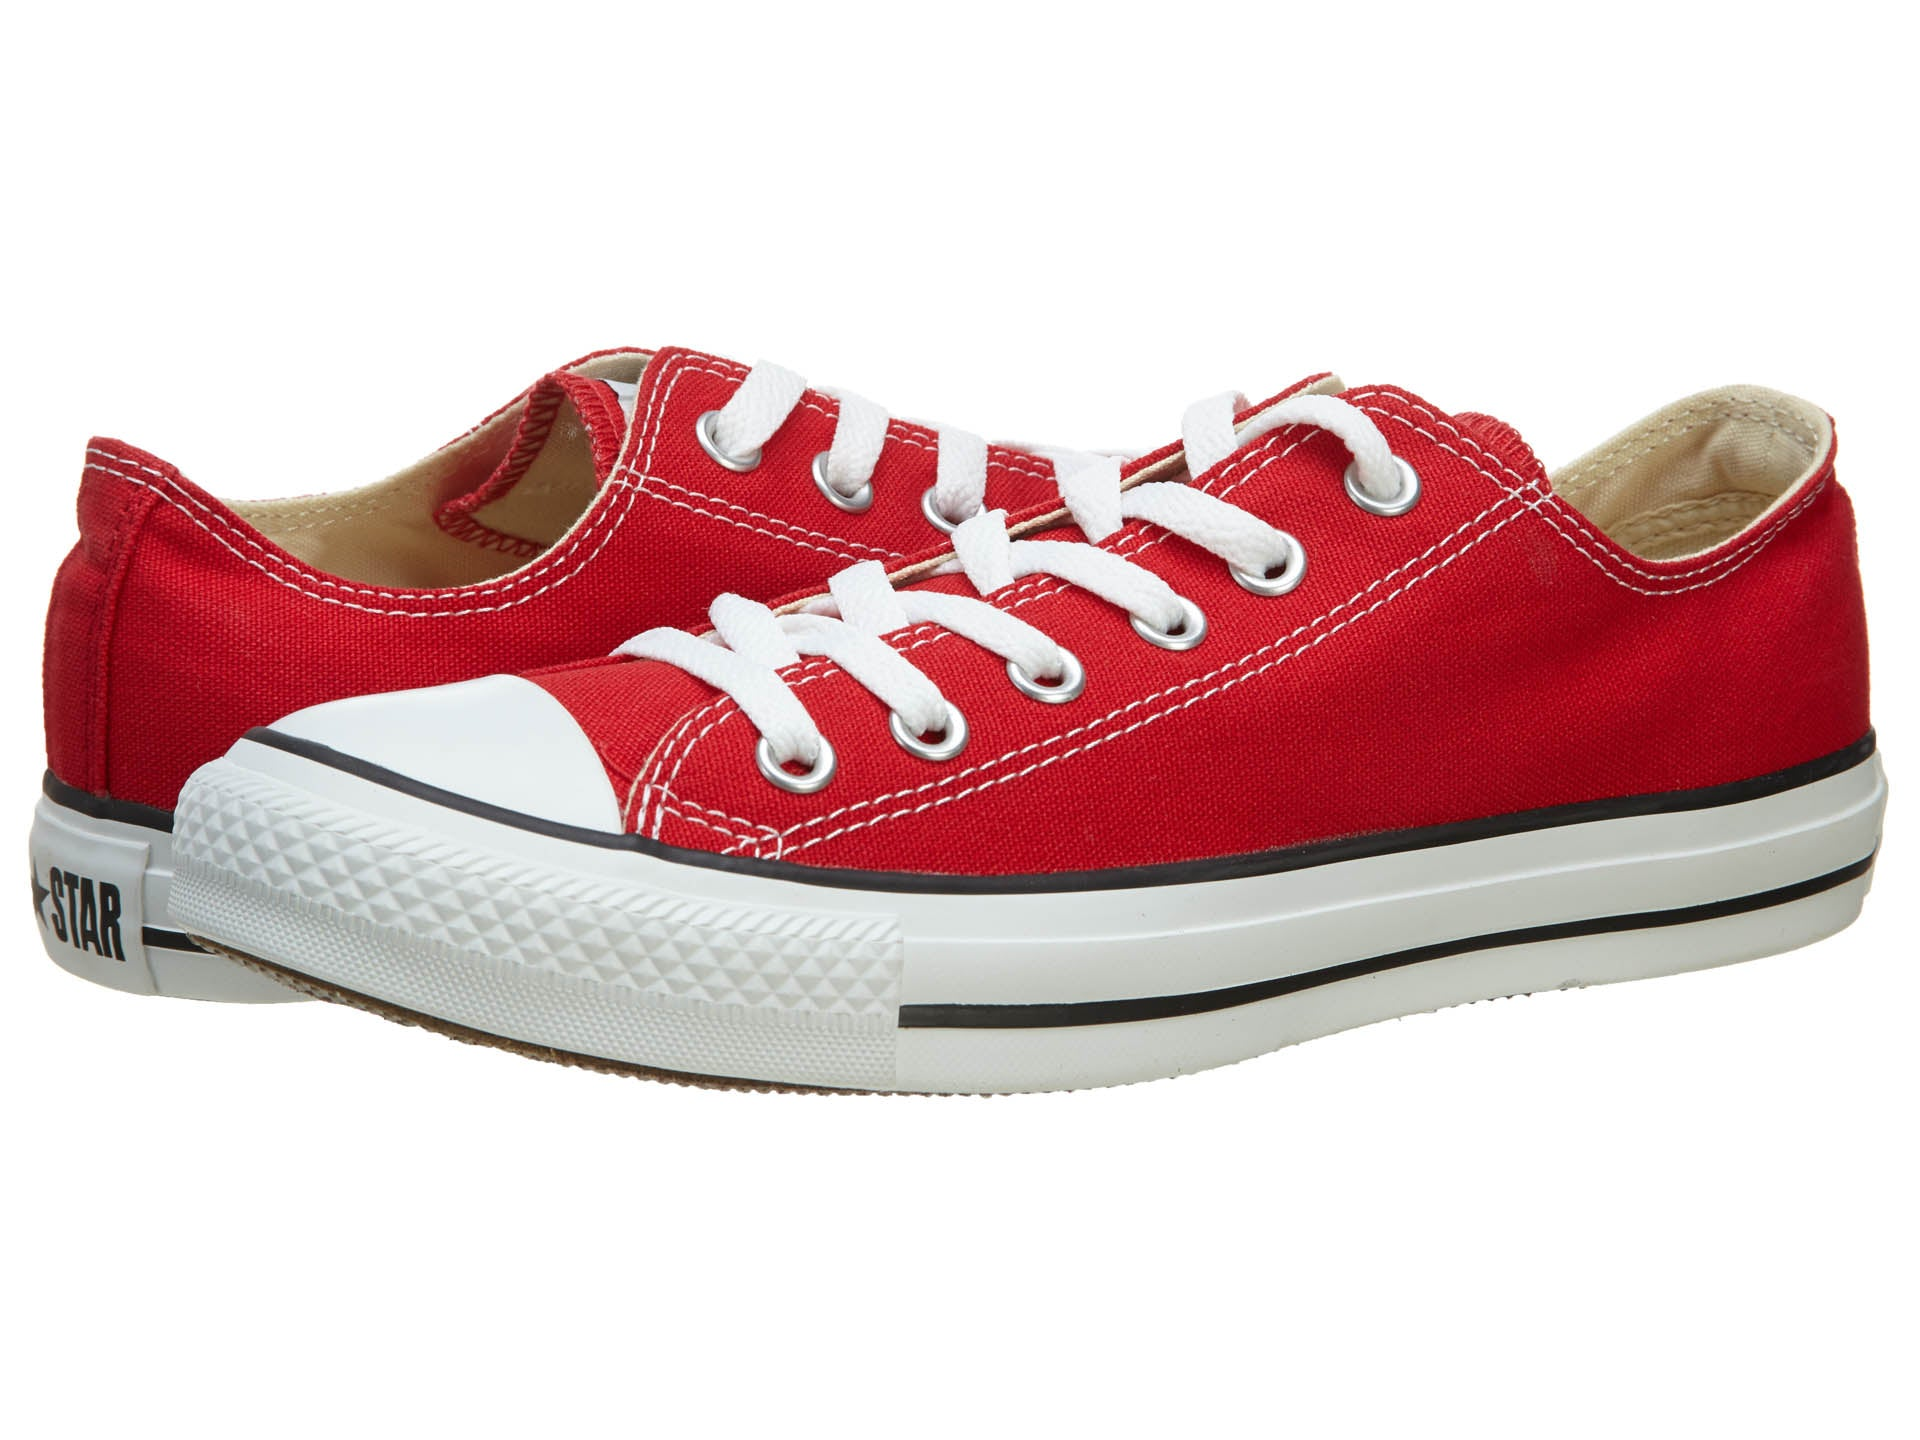 7749f4c570ed Converse Chuck Taylor All Star Red Low Top OX M9696 Canvas New in Box  Athletic Shoes ...